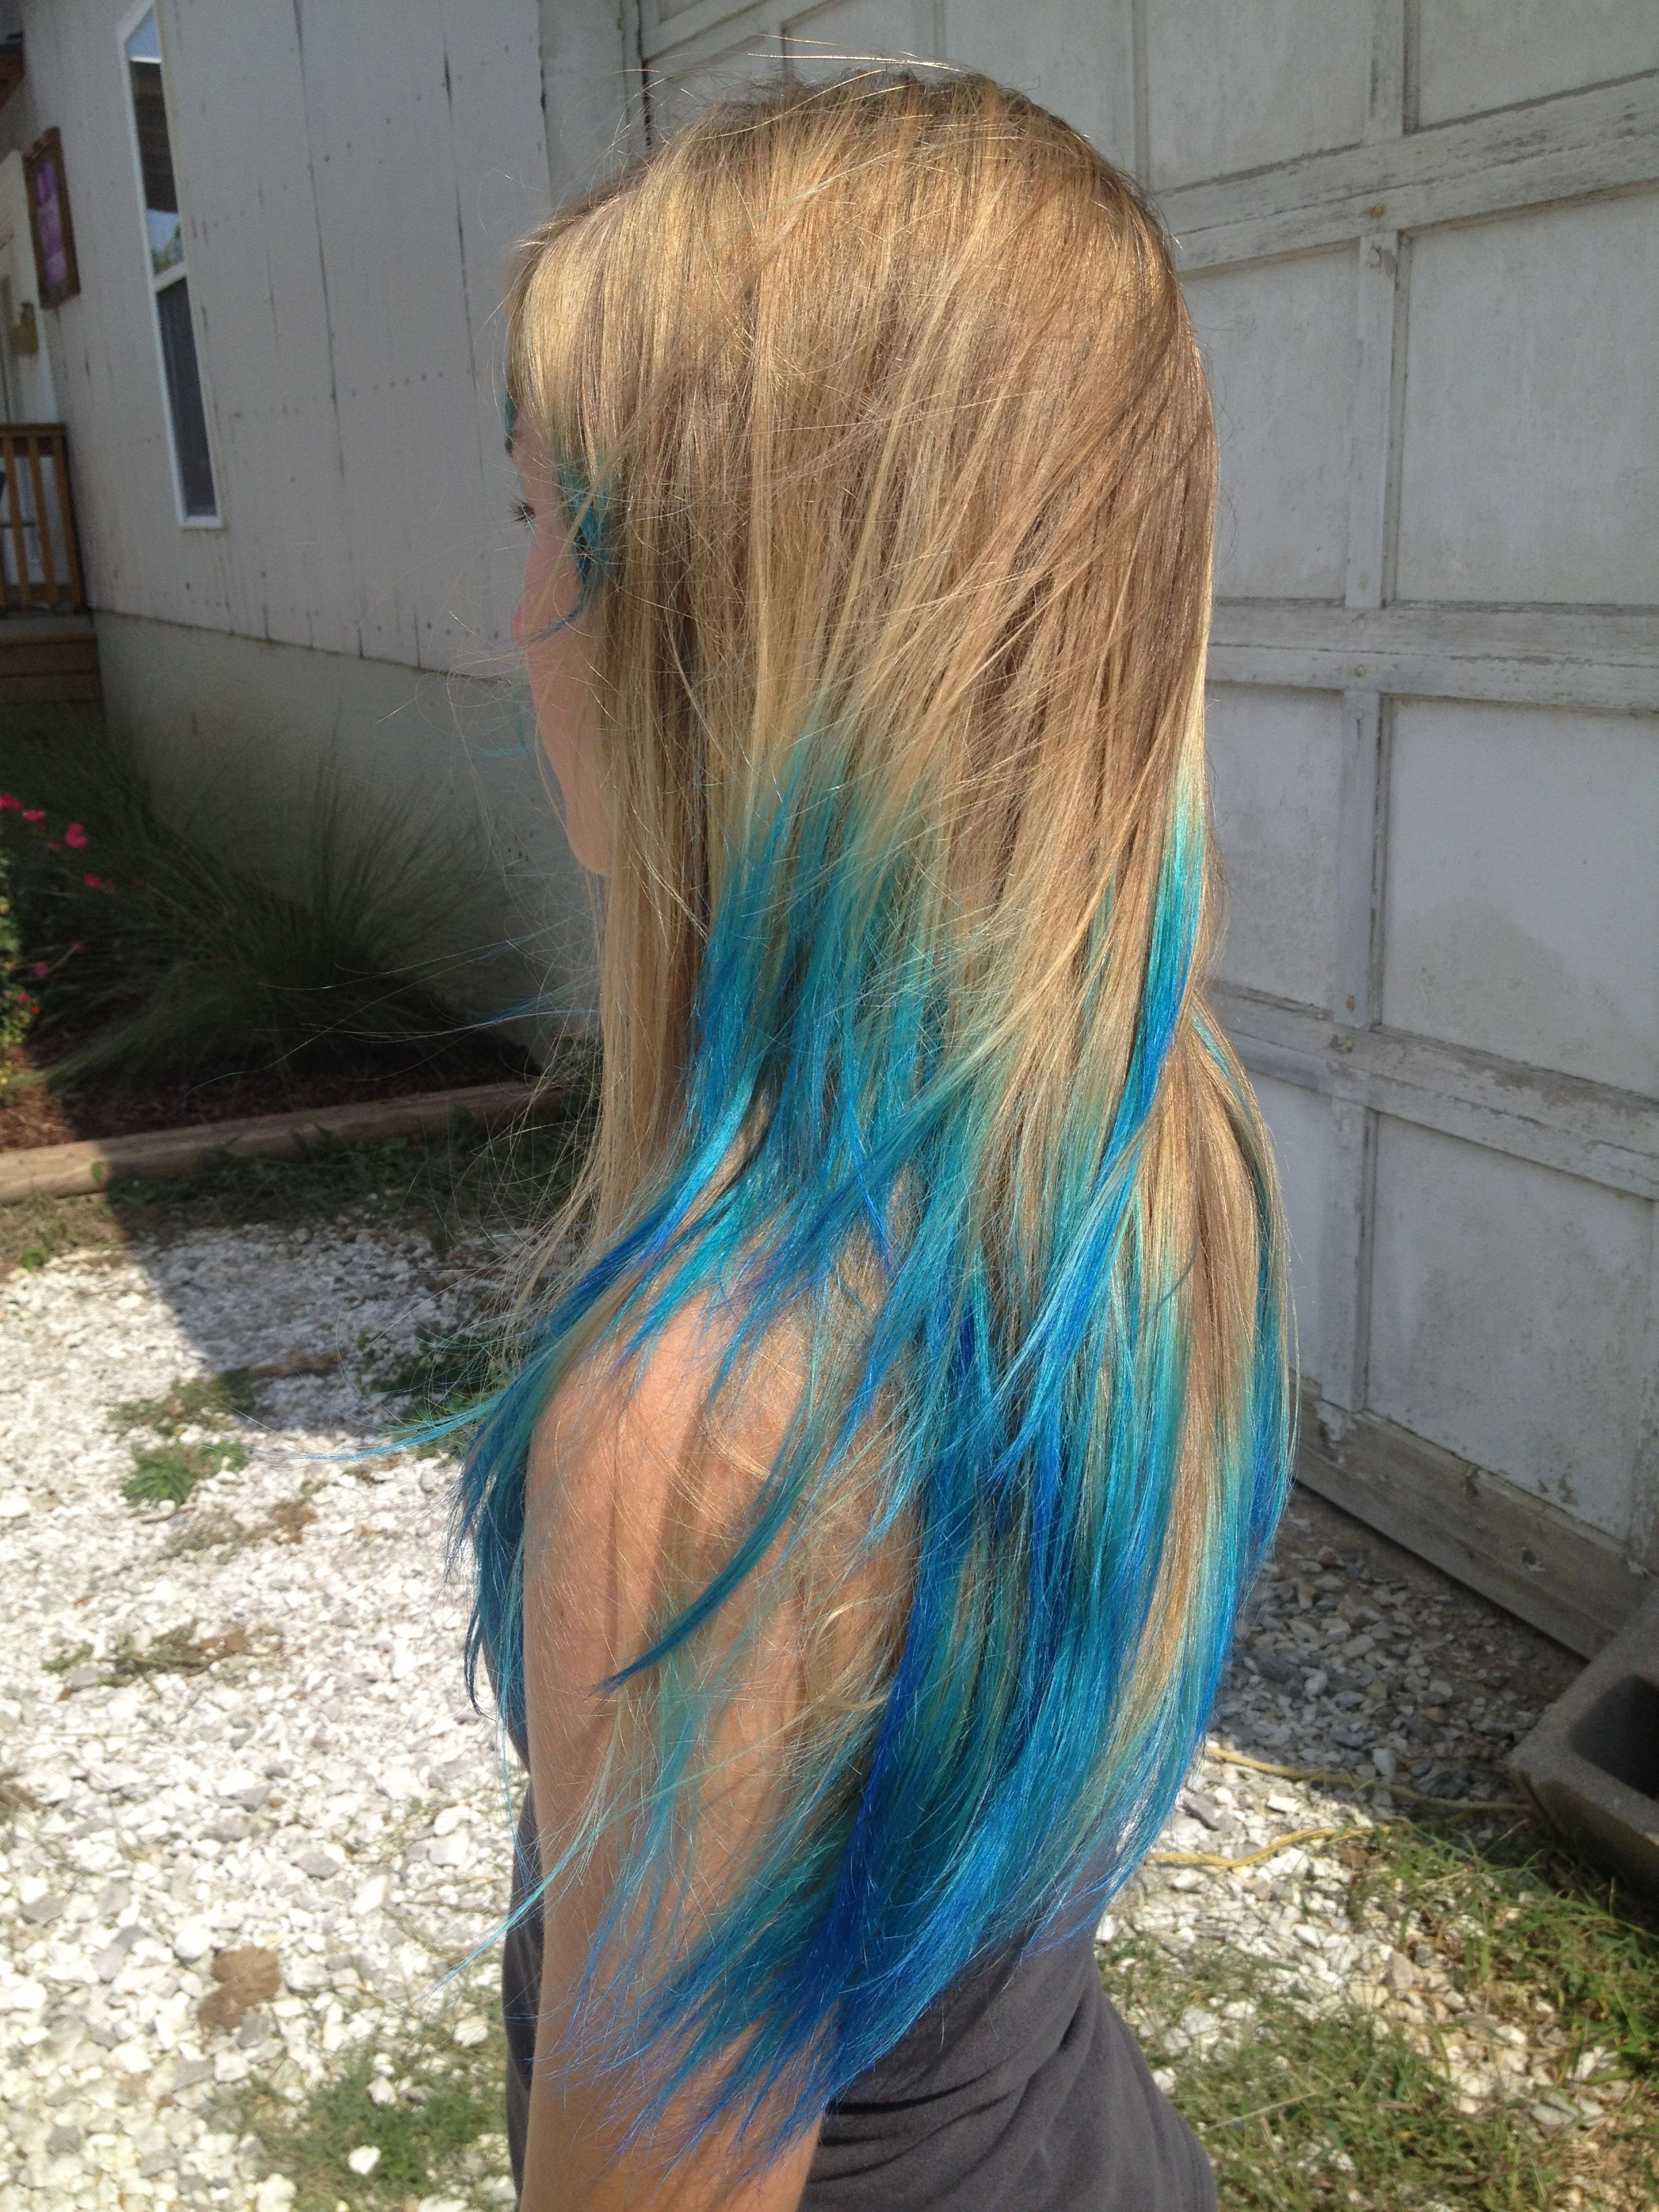 Roxiejanehunt Color Faded Dip Dye Get The Look Blue Tips Hair Dipped Hair Blonde Hair With Blue Tips